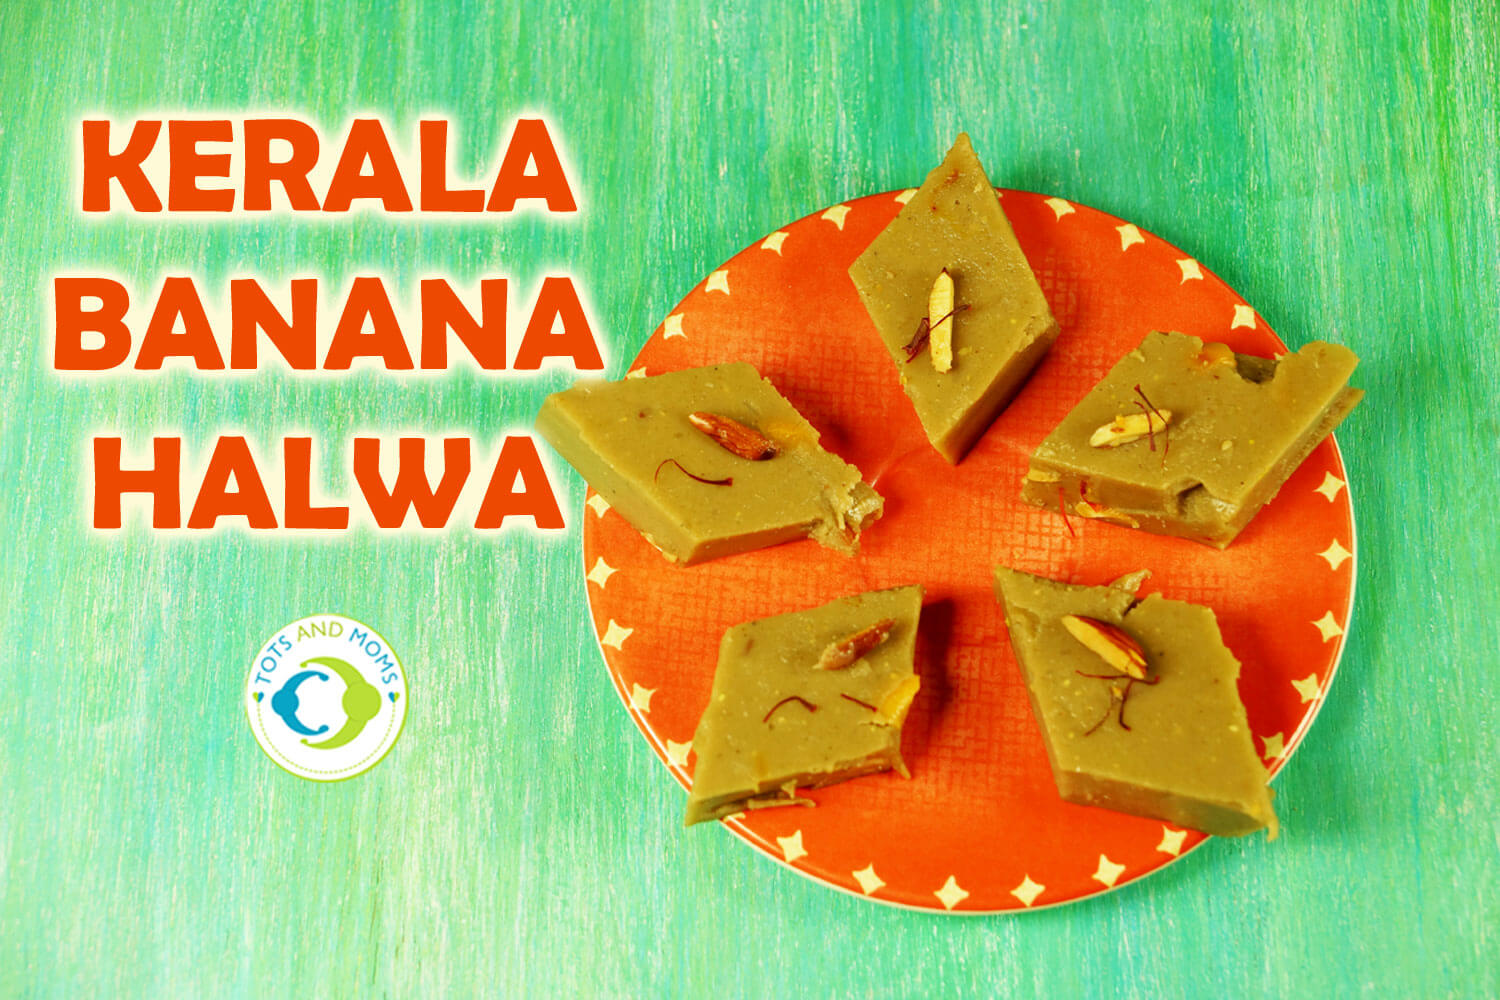 KERALA BANANA HALWA for Toddlers, Kids & Family healthy & tasty